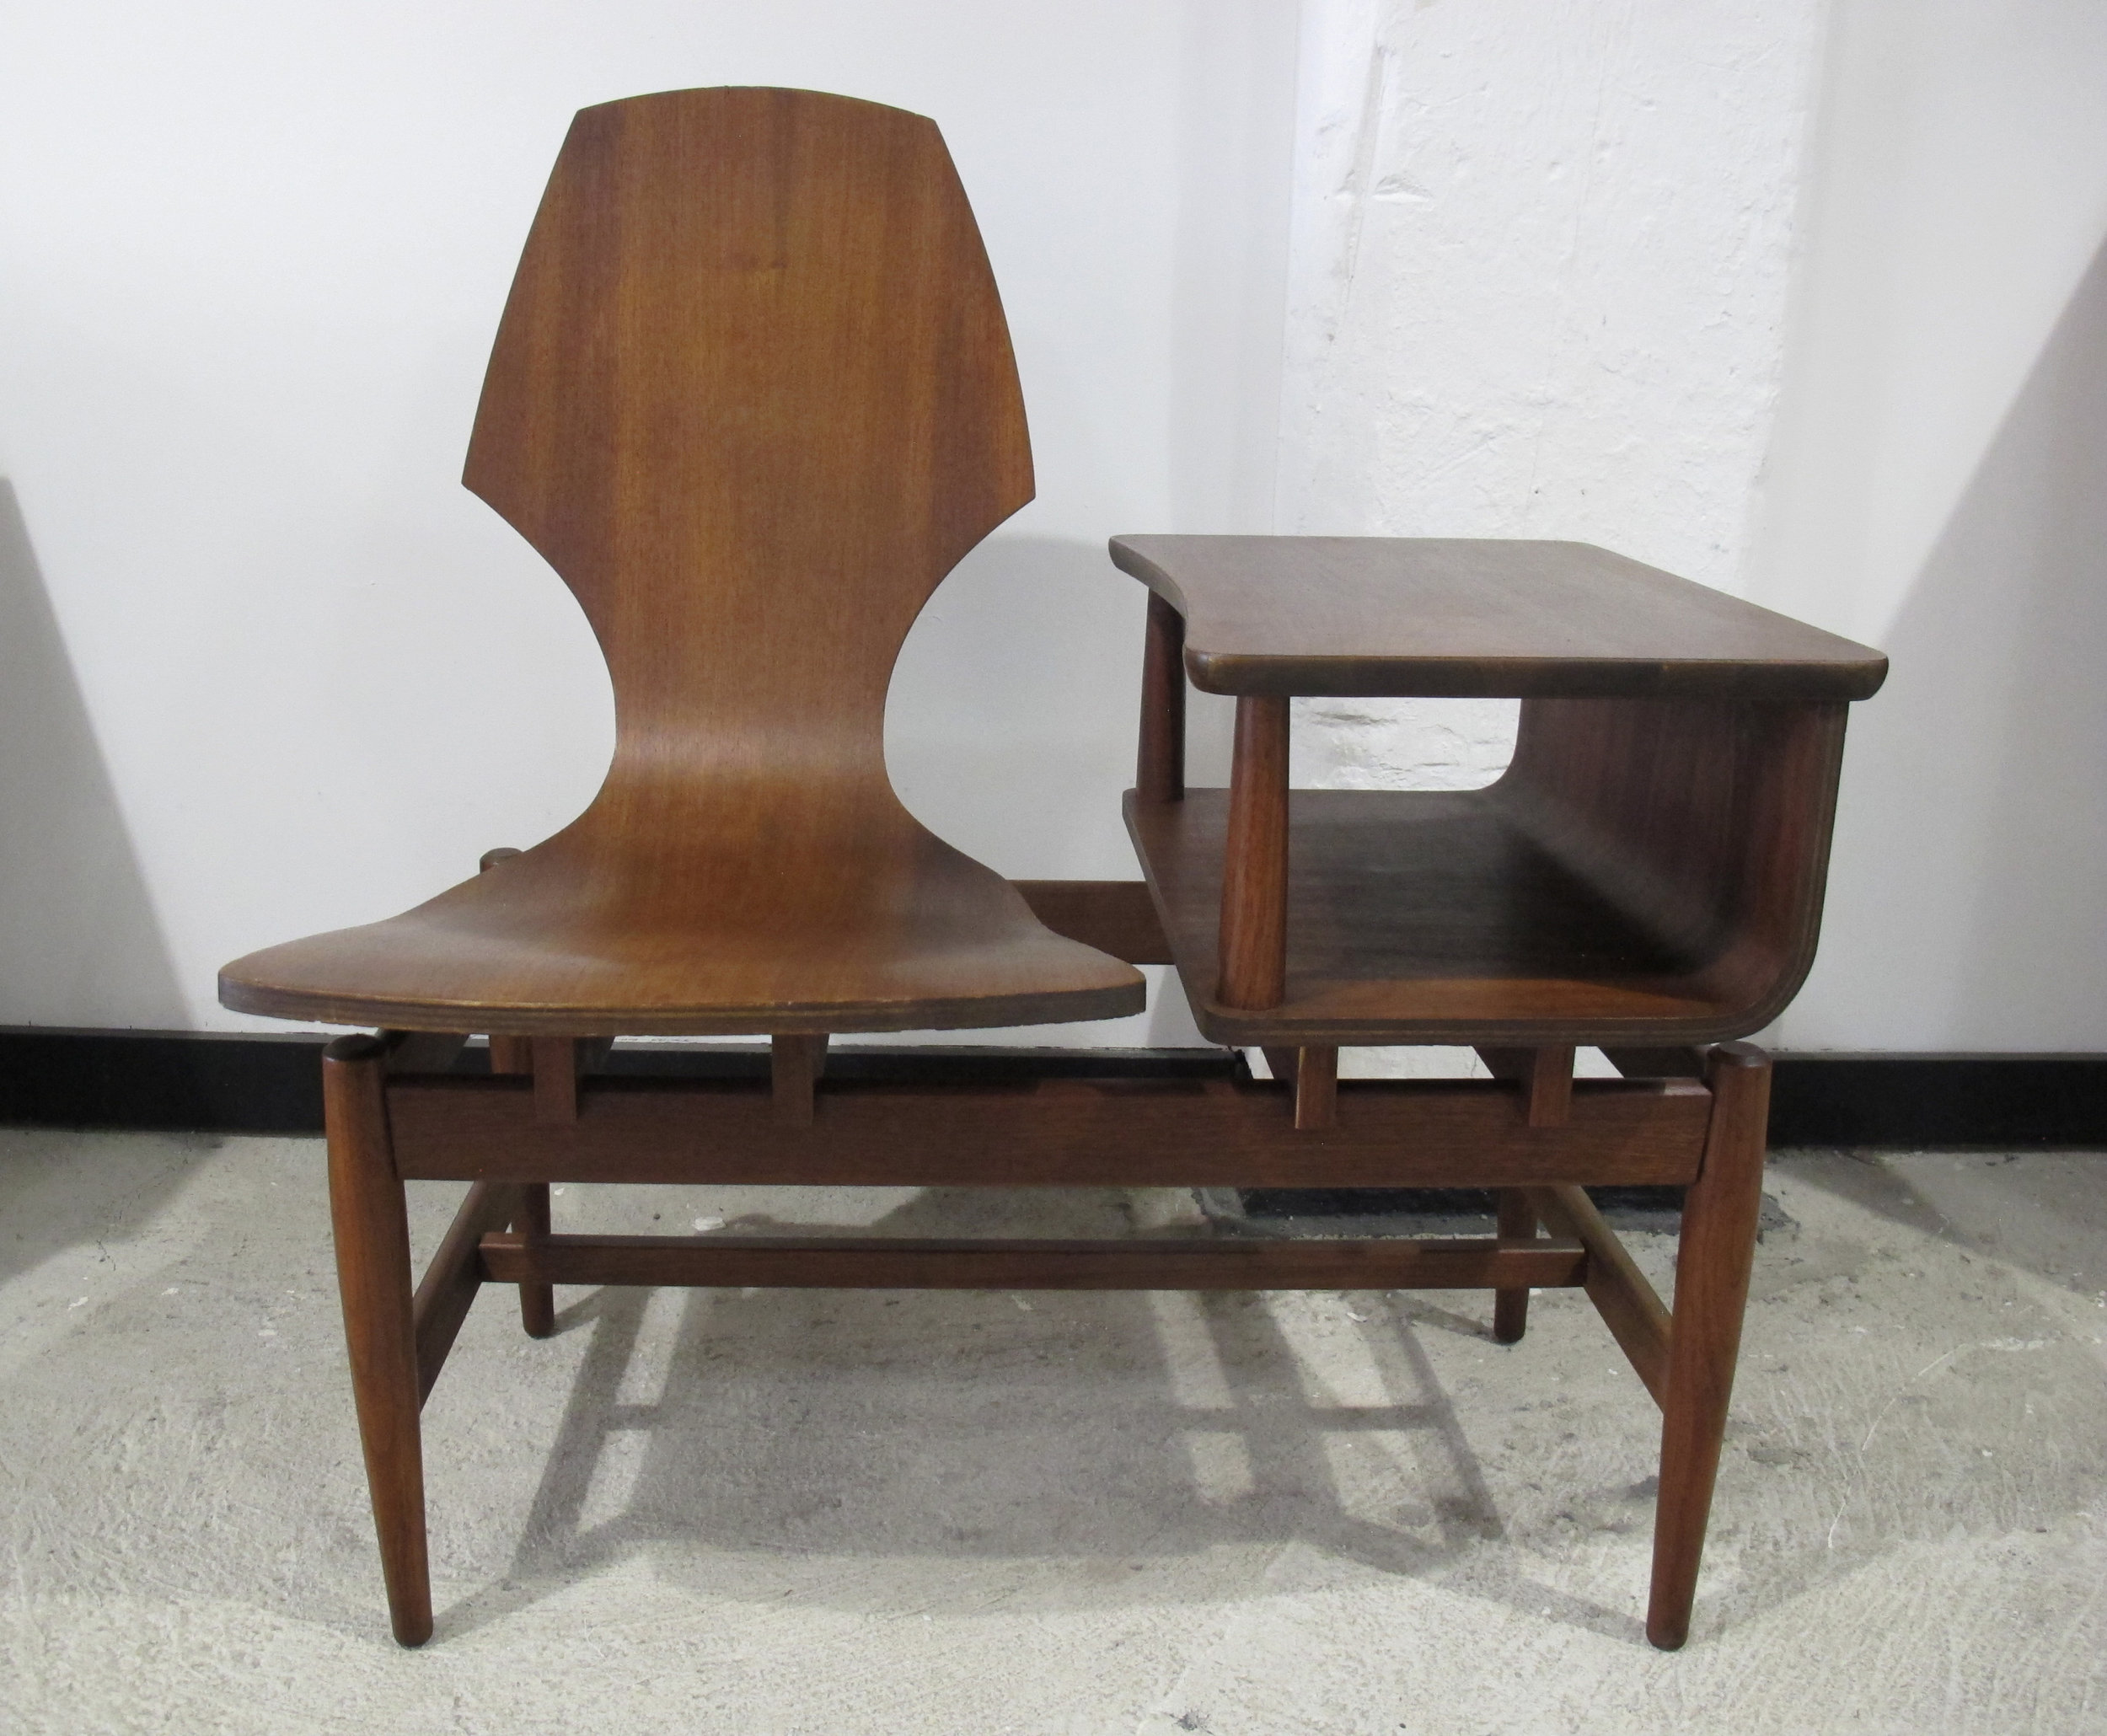 MID CENTURY PLYCRAFT BENTWOOD TELEPHONE TABLE AND CHAIR